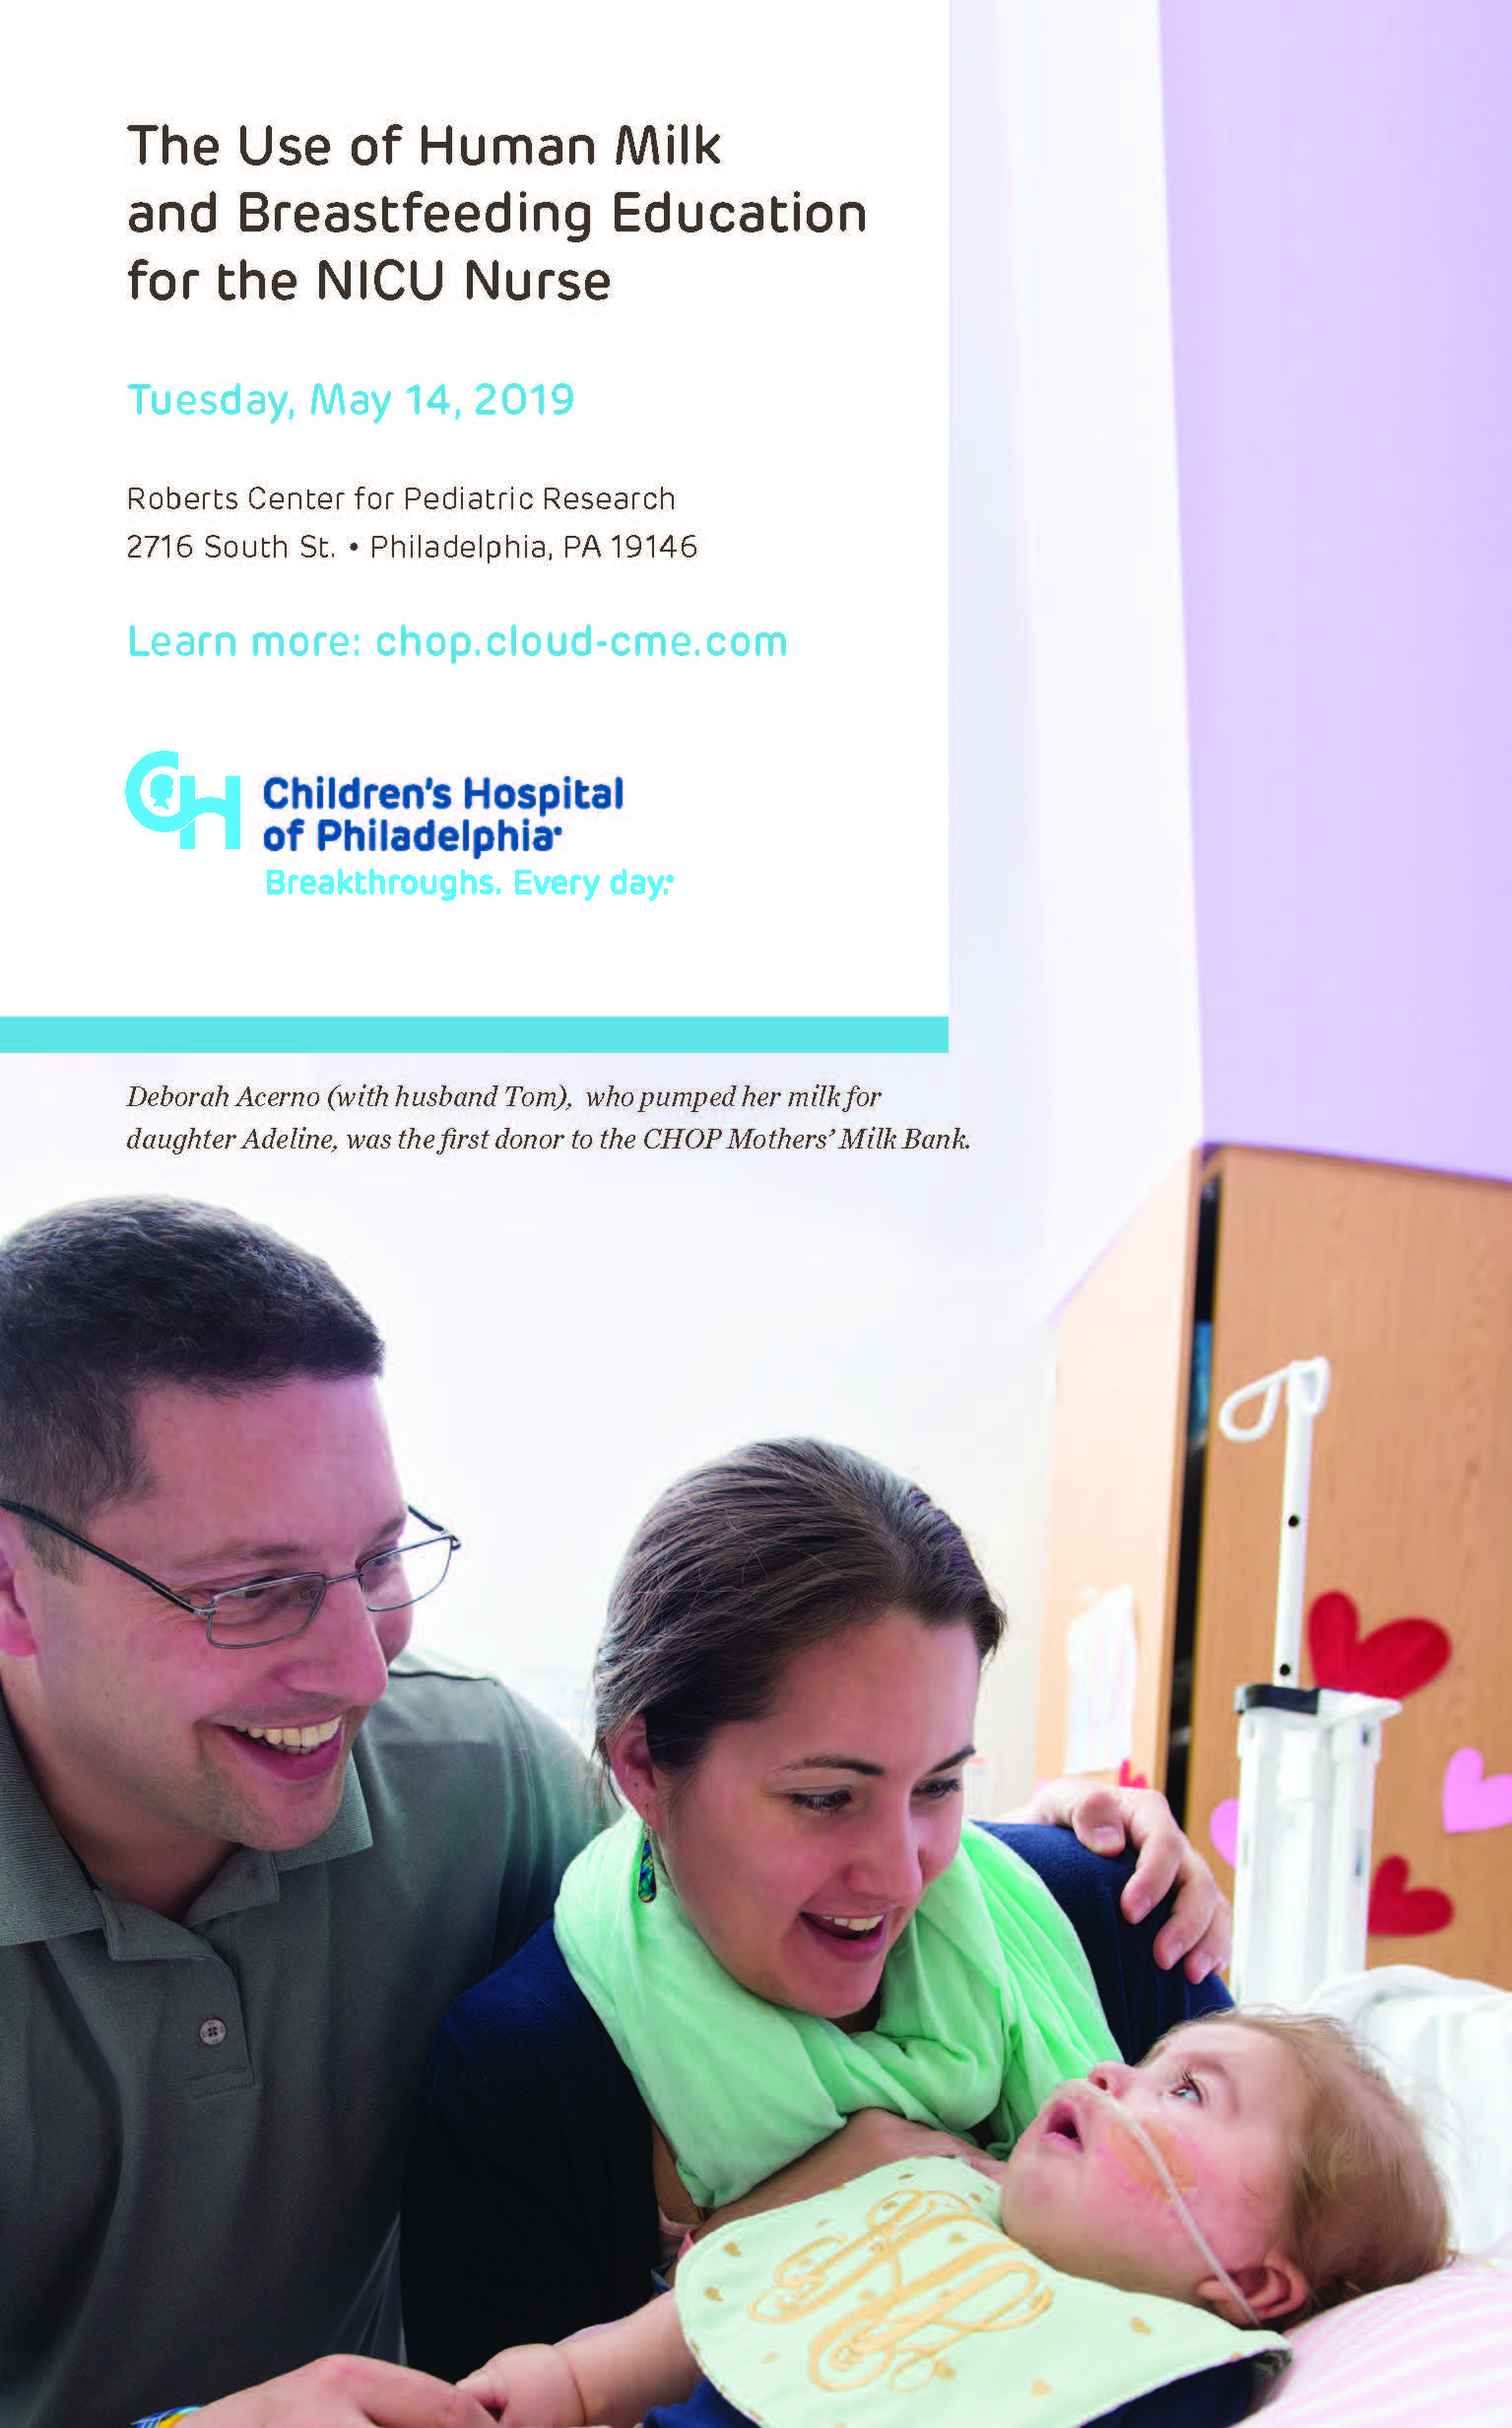 Use of Human Milk and Breastfeeding Education for the NICU Nurse Banner